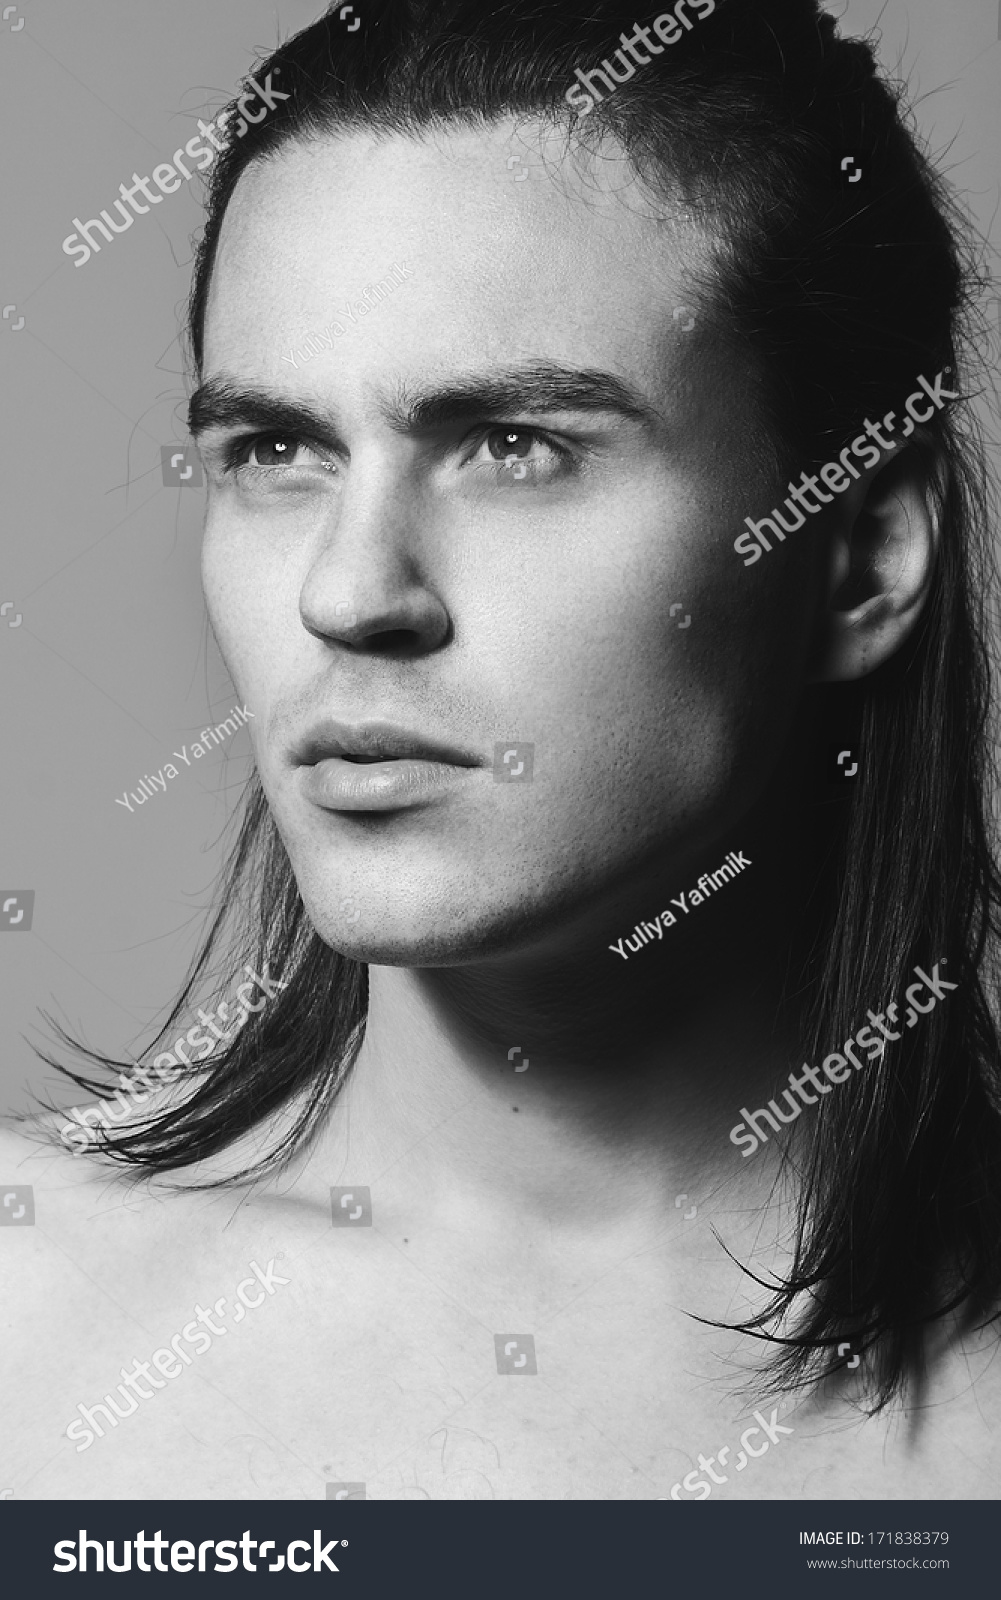 Portrait of a handsome man in studio black and white photographs close up